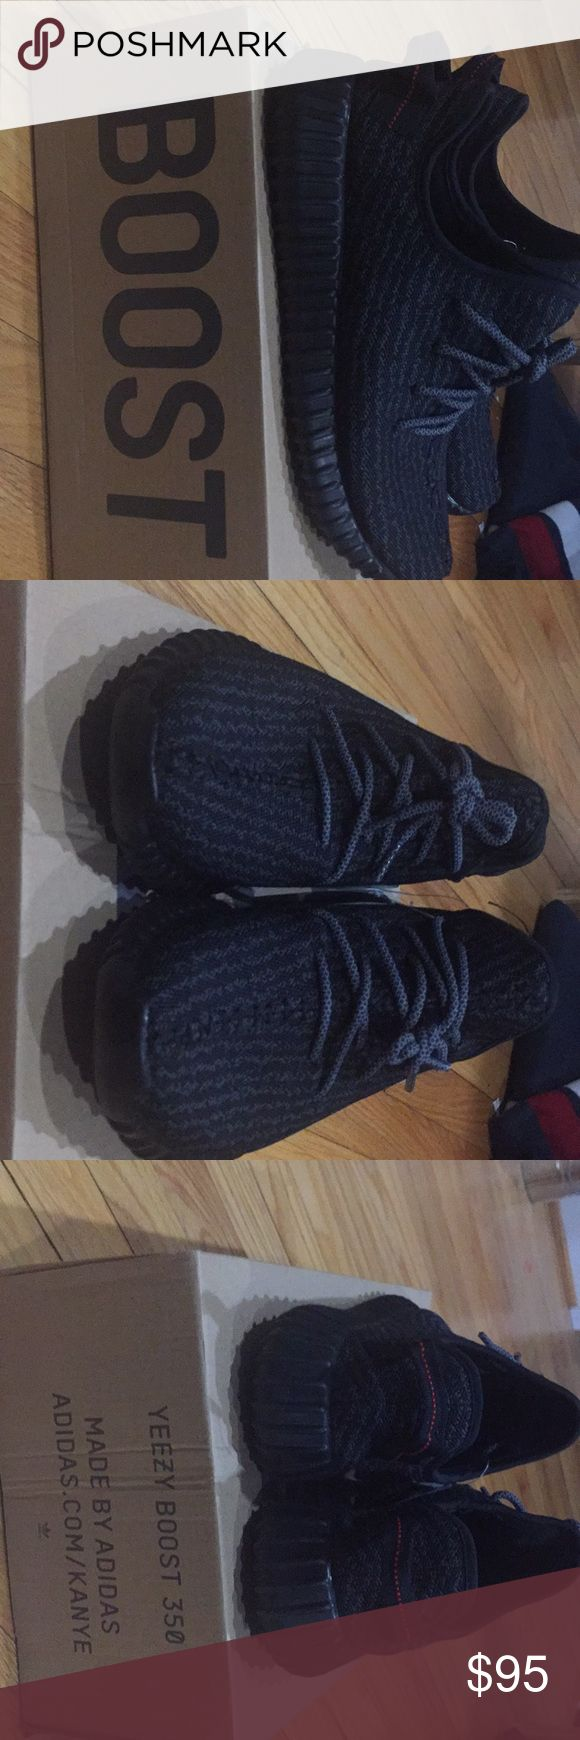 Yeezy Pirate Black 350 Yeezy Pirate Black 350 Size 9.5 Yeezy Shoes Athletic Shoes